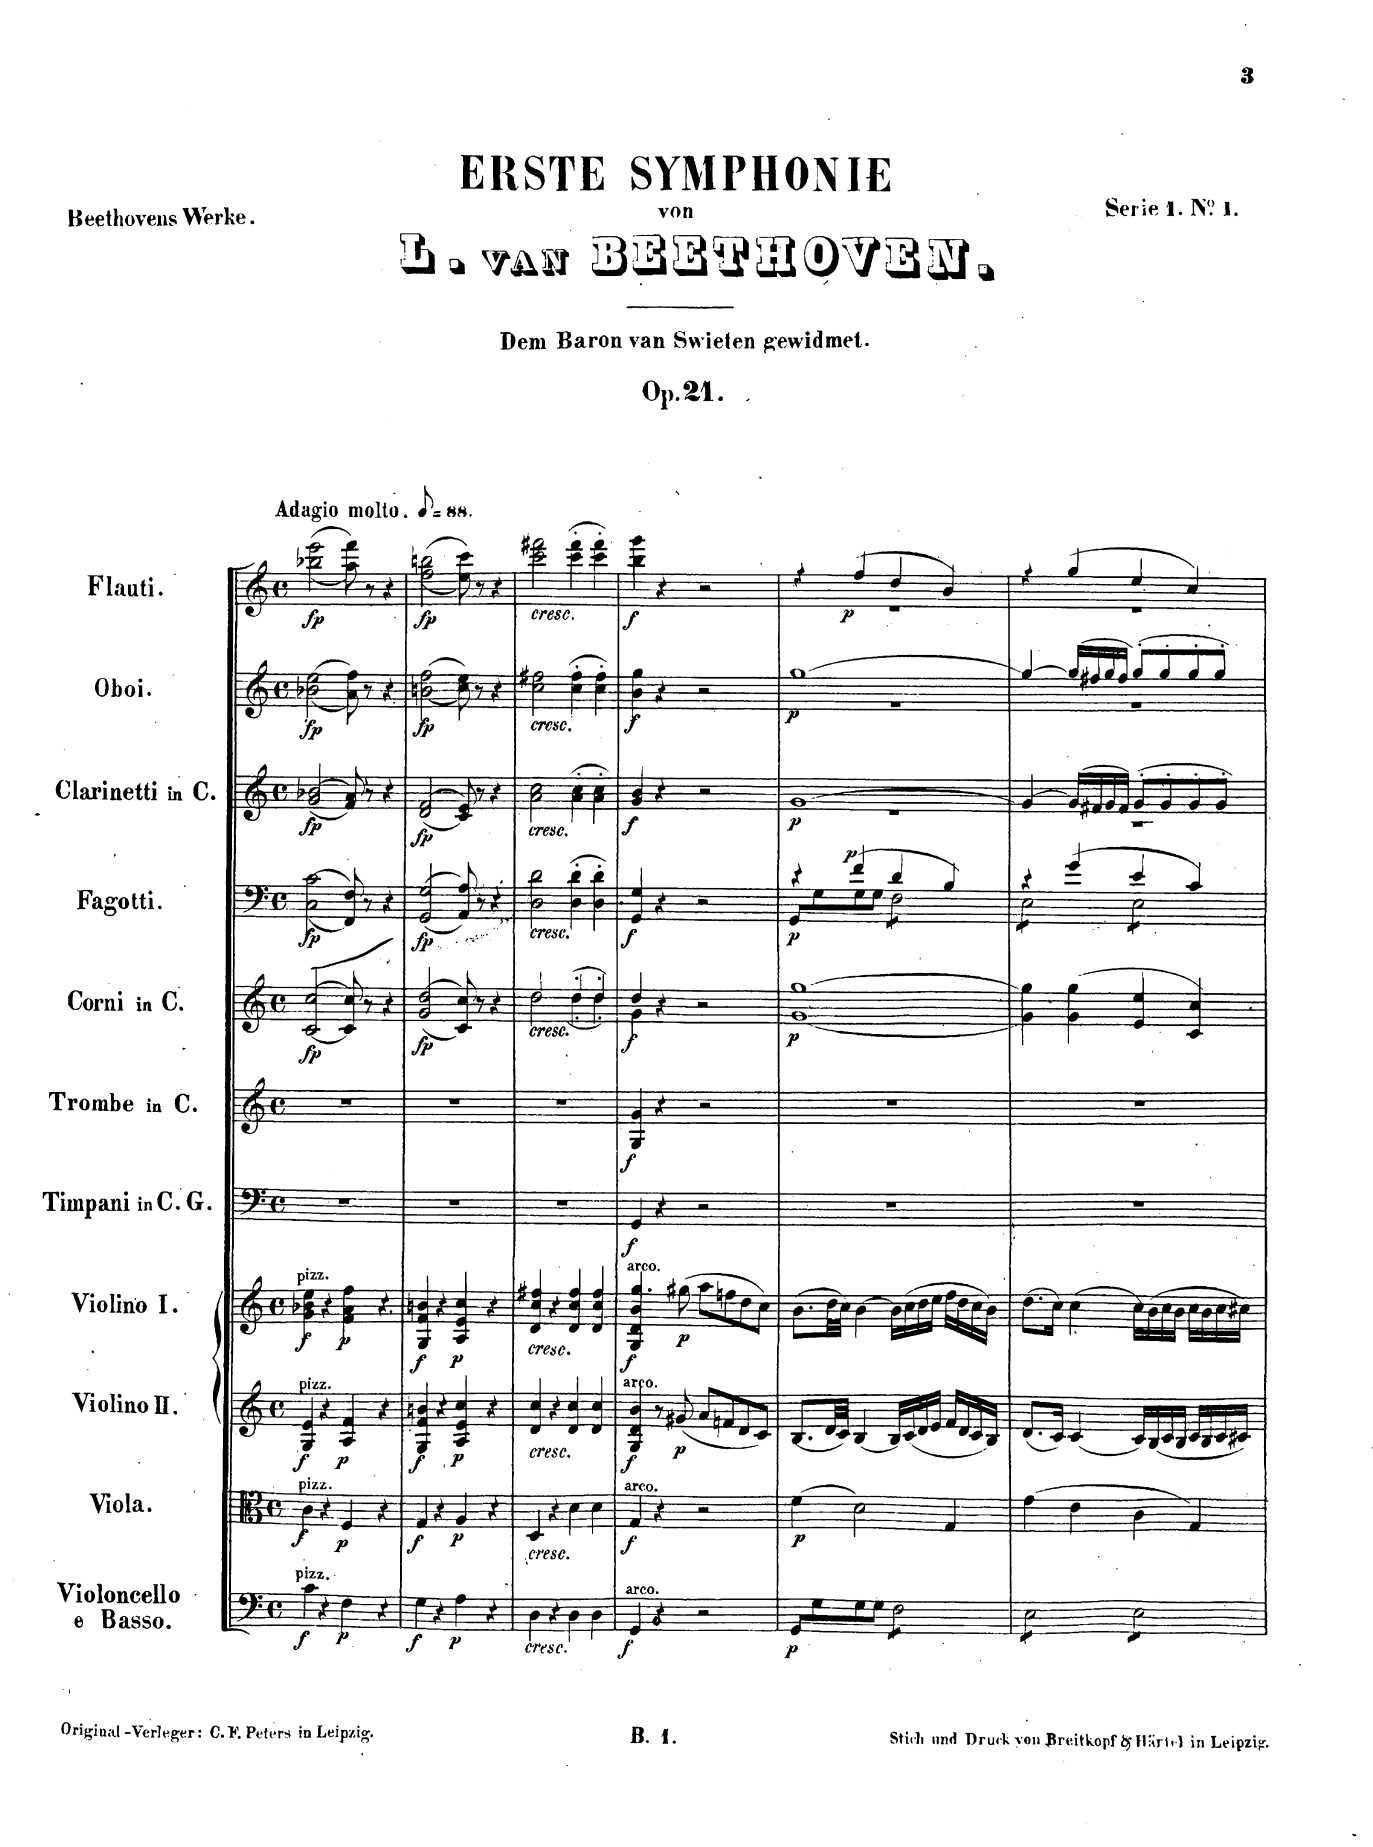 Beethoven symphony no. 1, score, first page